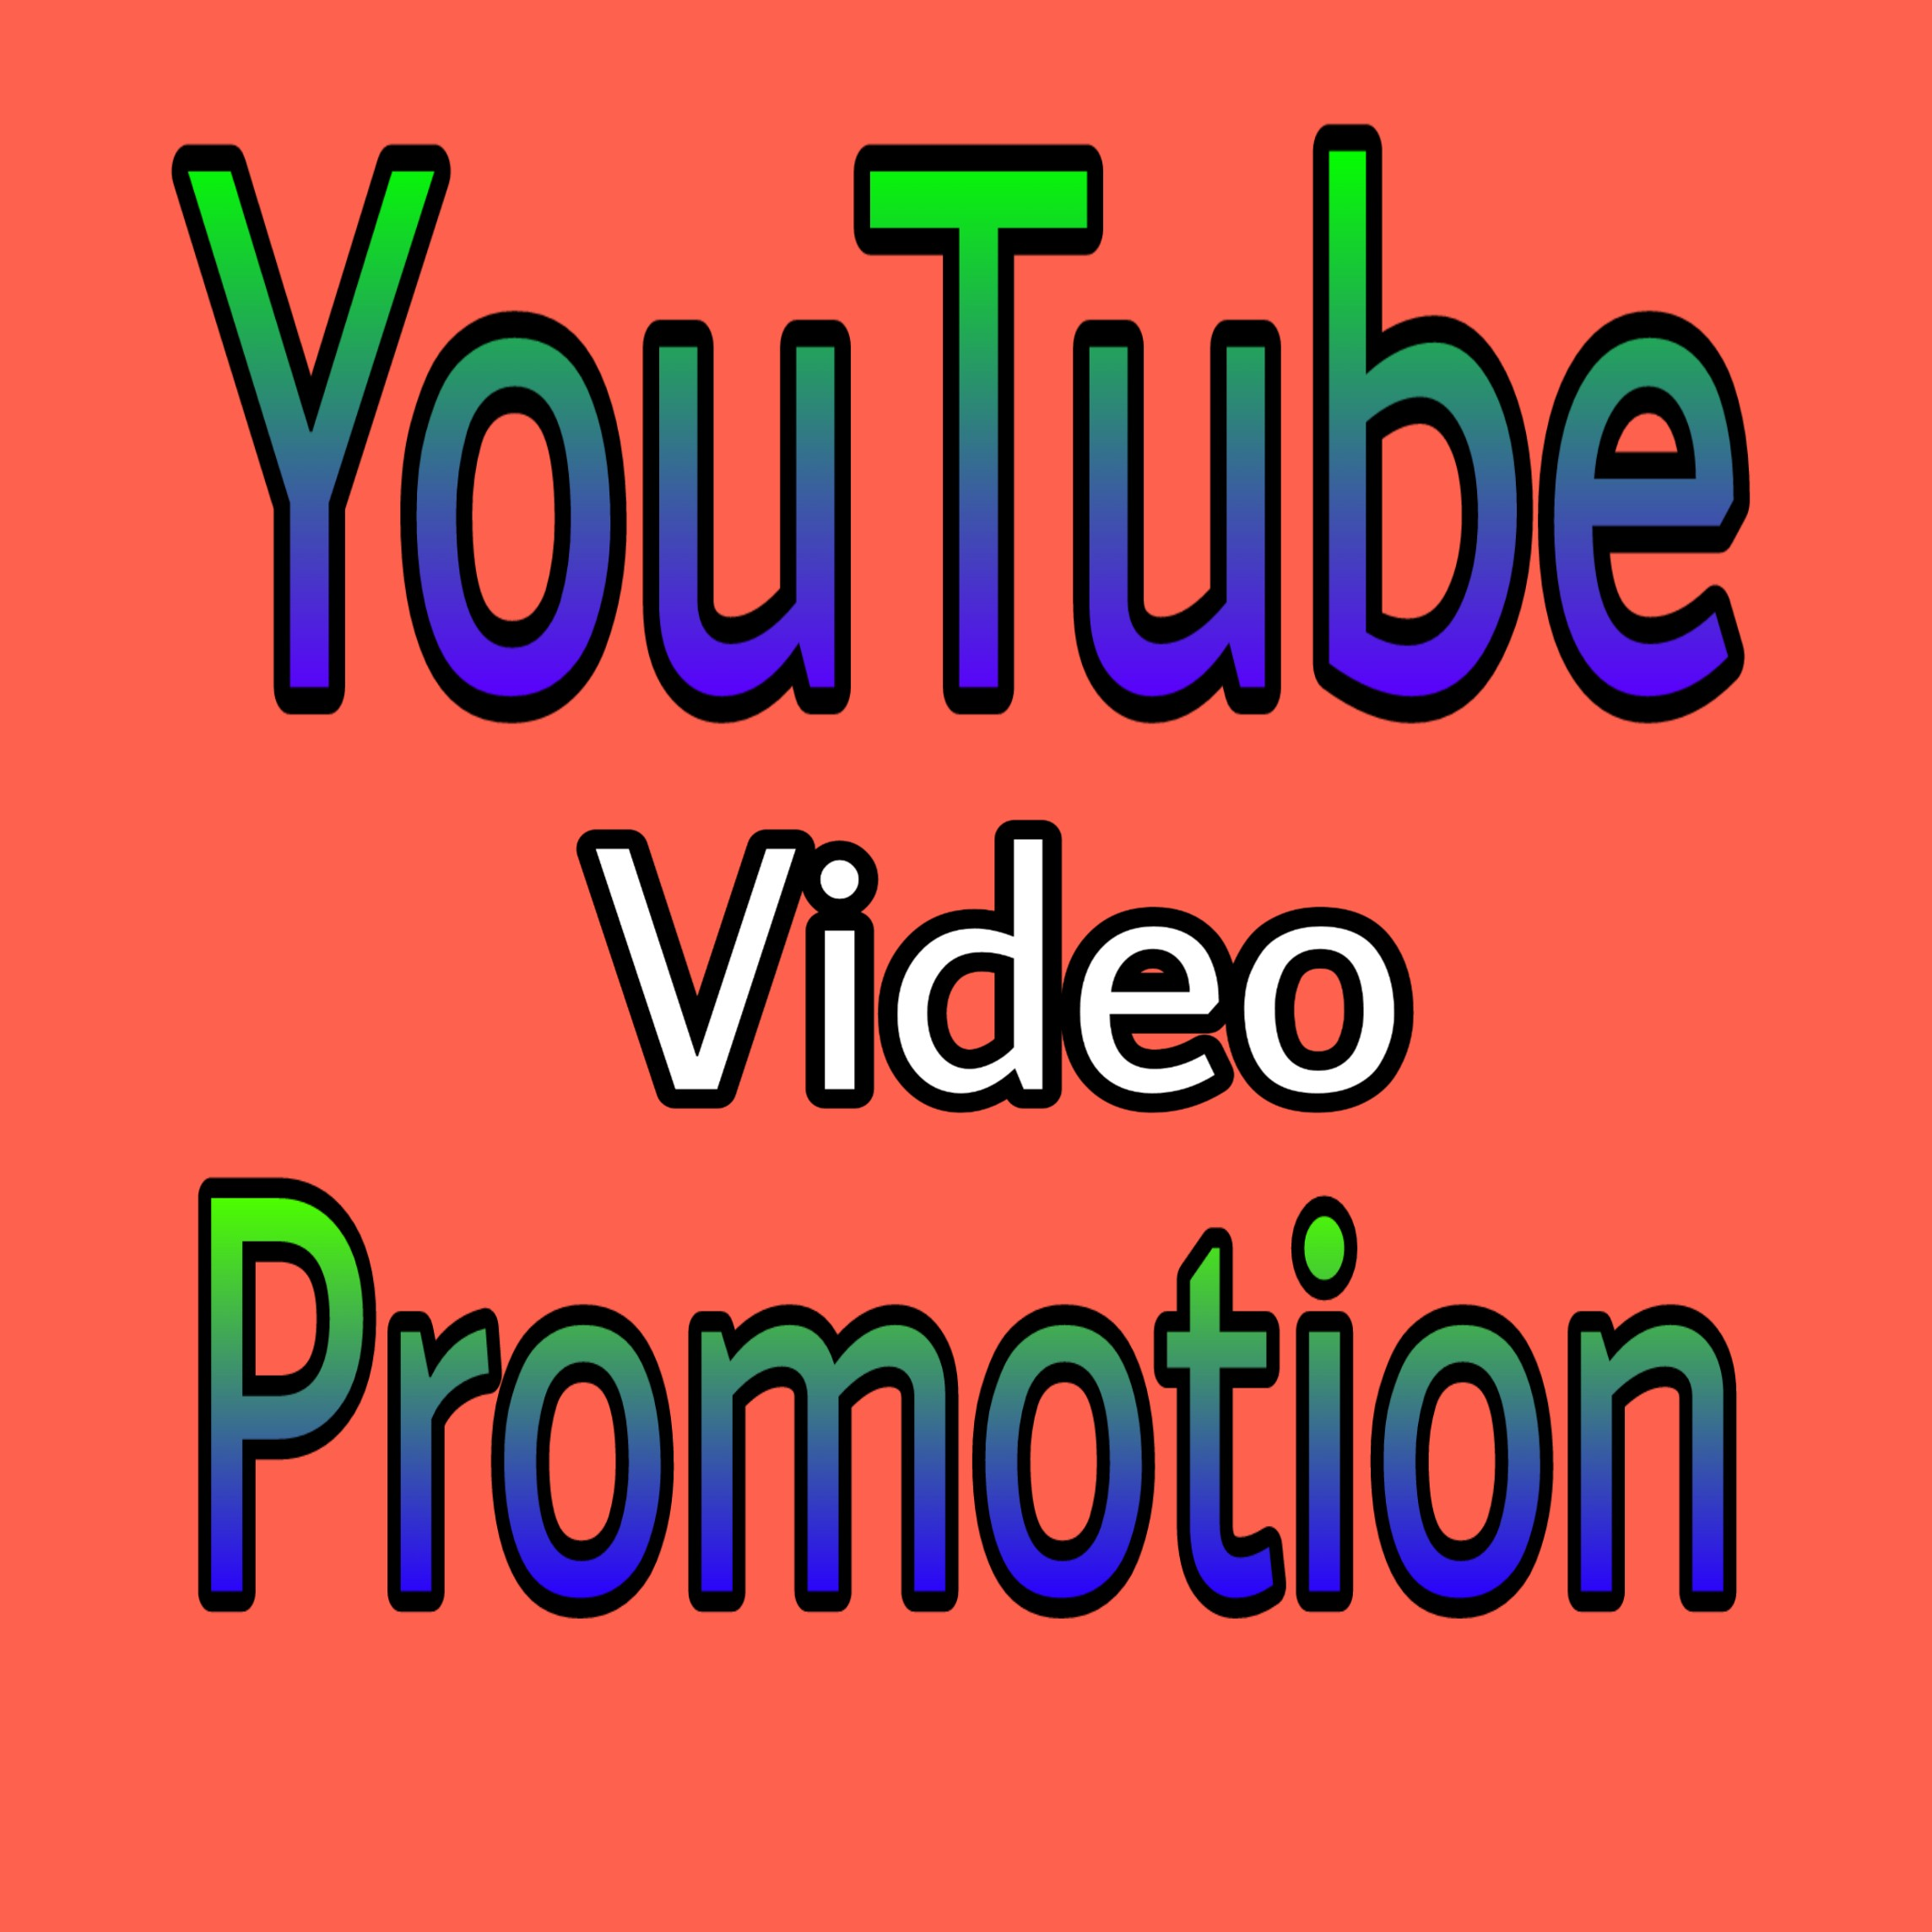 YouTube Video Promotion Marketing Via